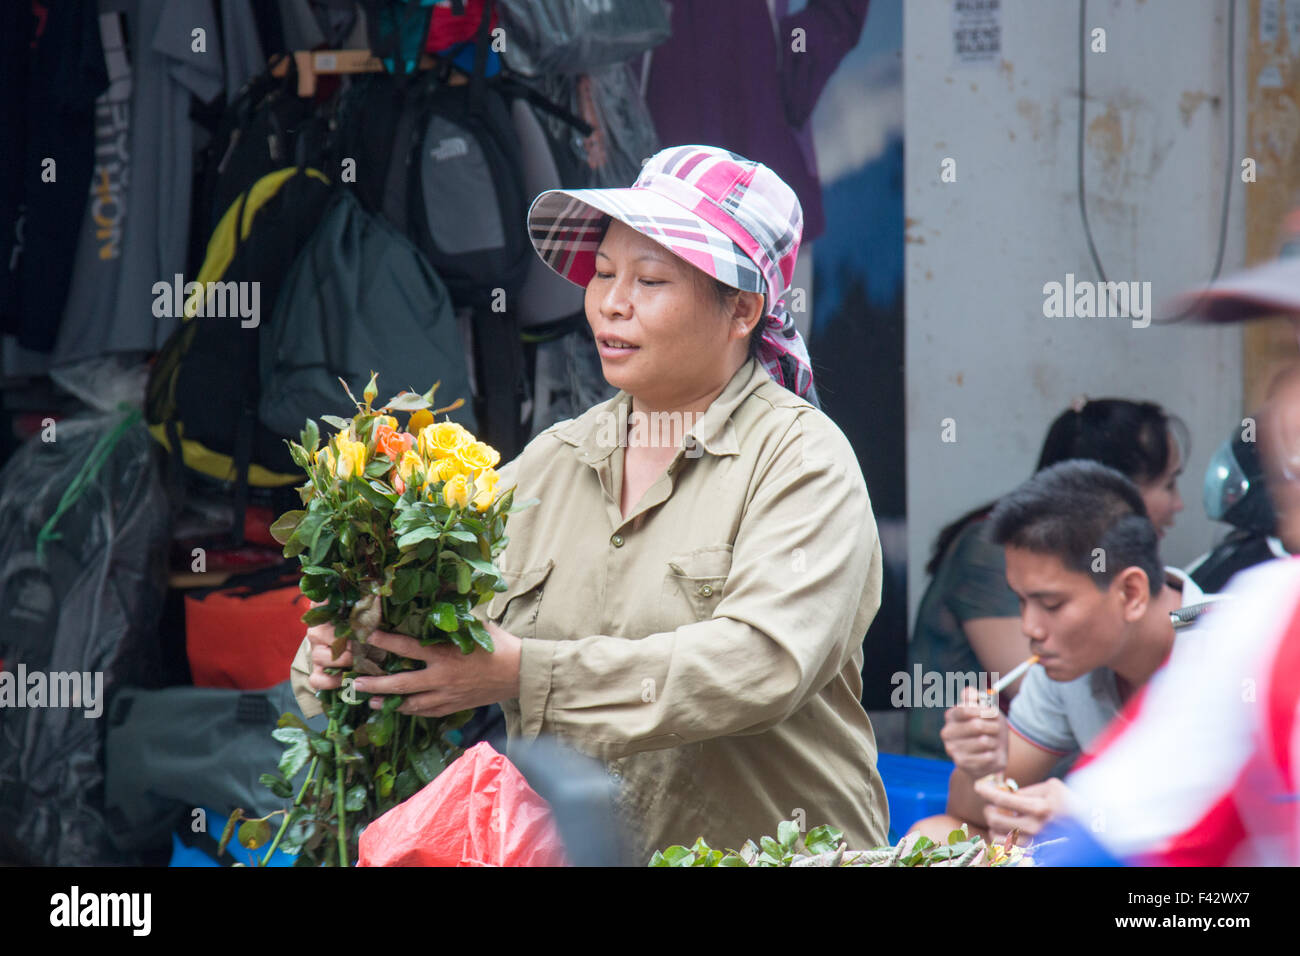 vietnamese street flower seller handing bunch of flowers to a purchaser,Hanoi,Vietnam - Stock Image